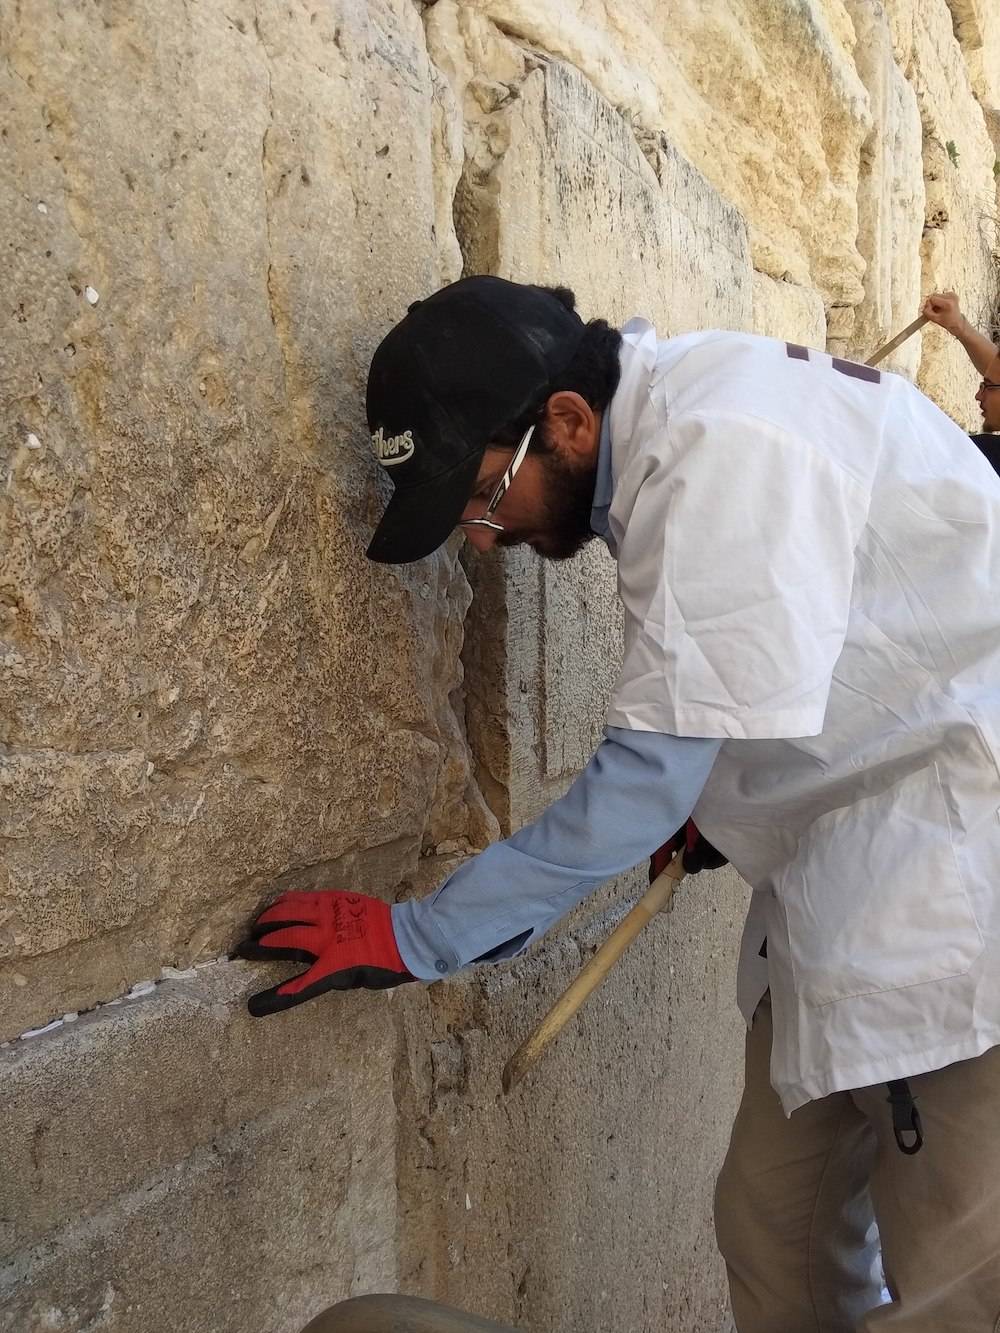 A man cleaning the Western Wall. Photo by Gil Zohar.